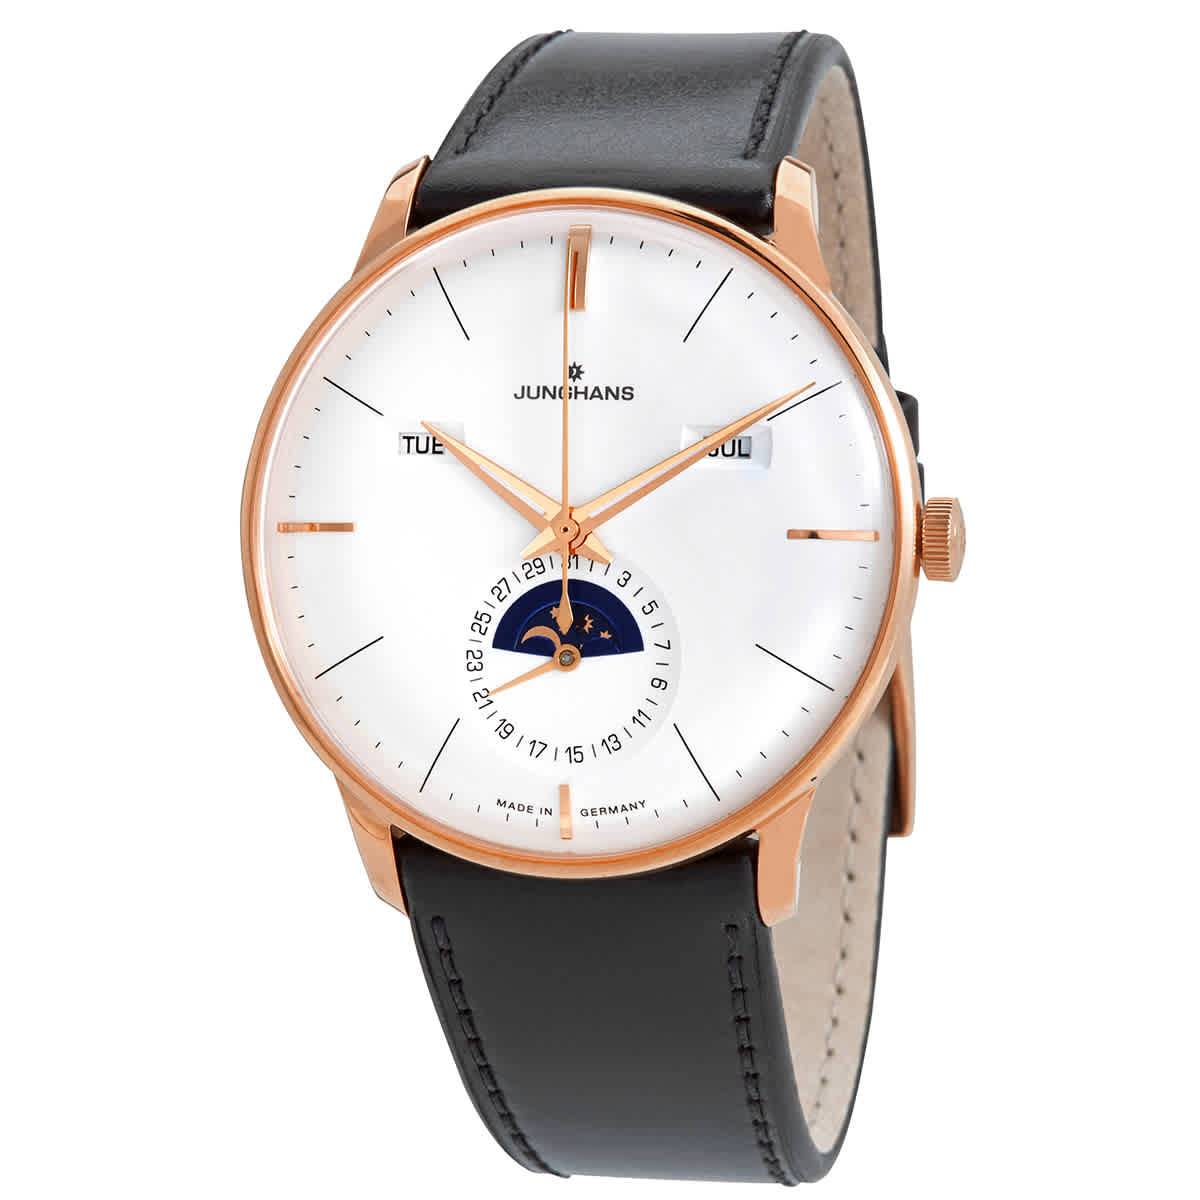 Junghans Meister Kalender Automatic Silver Dial Mens Watch 027/7003.01 In Black